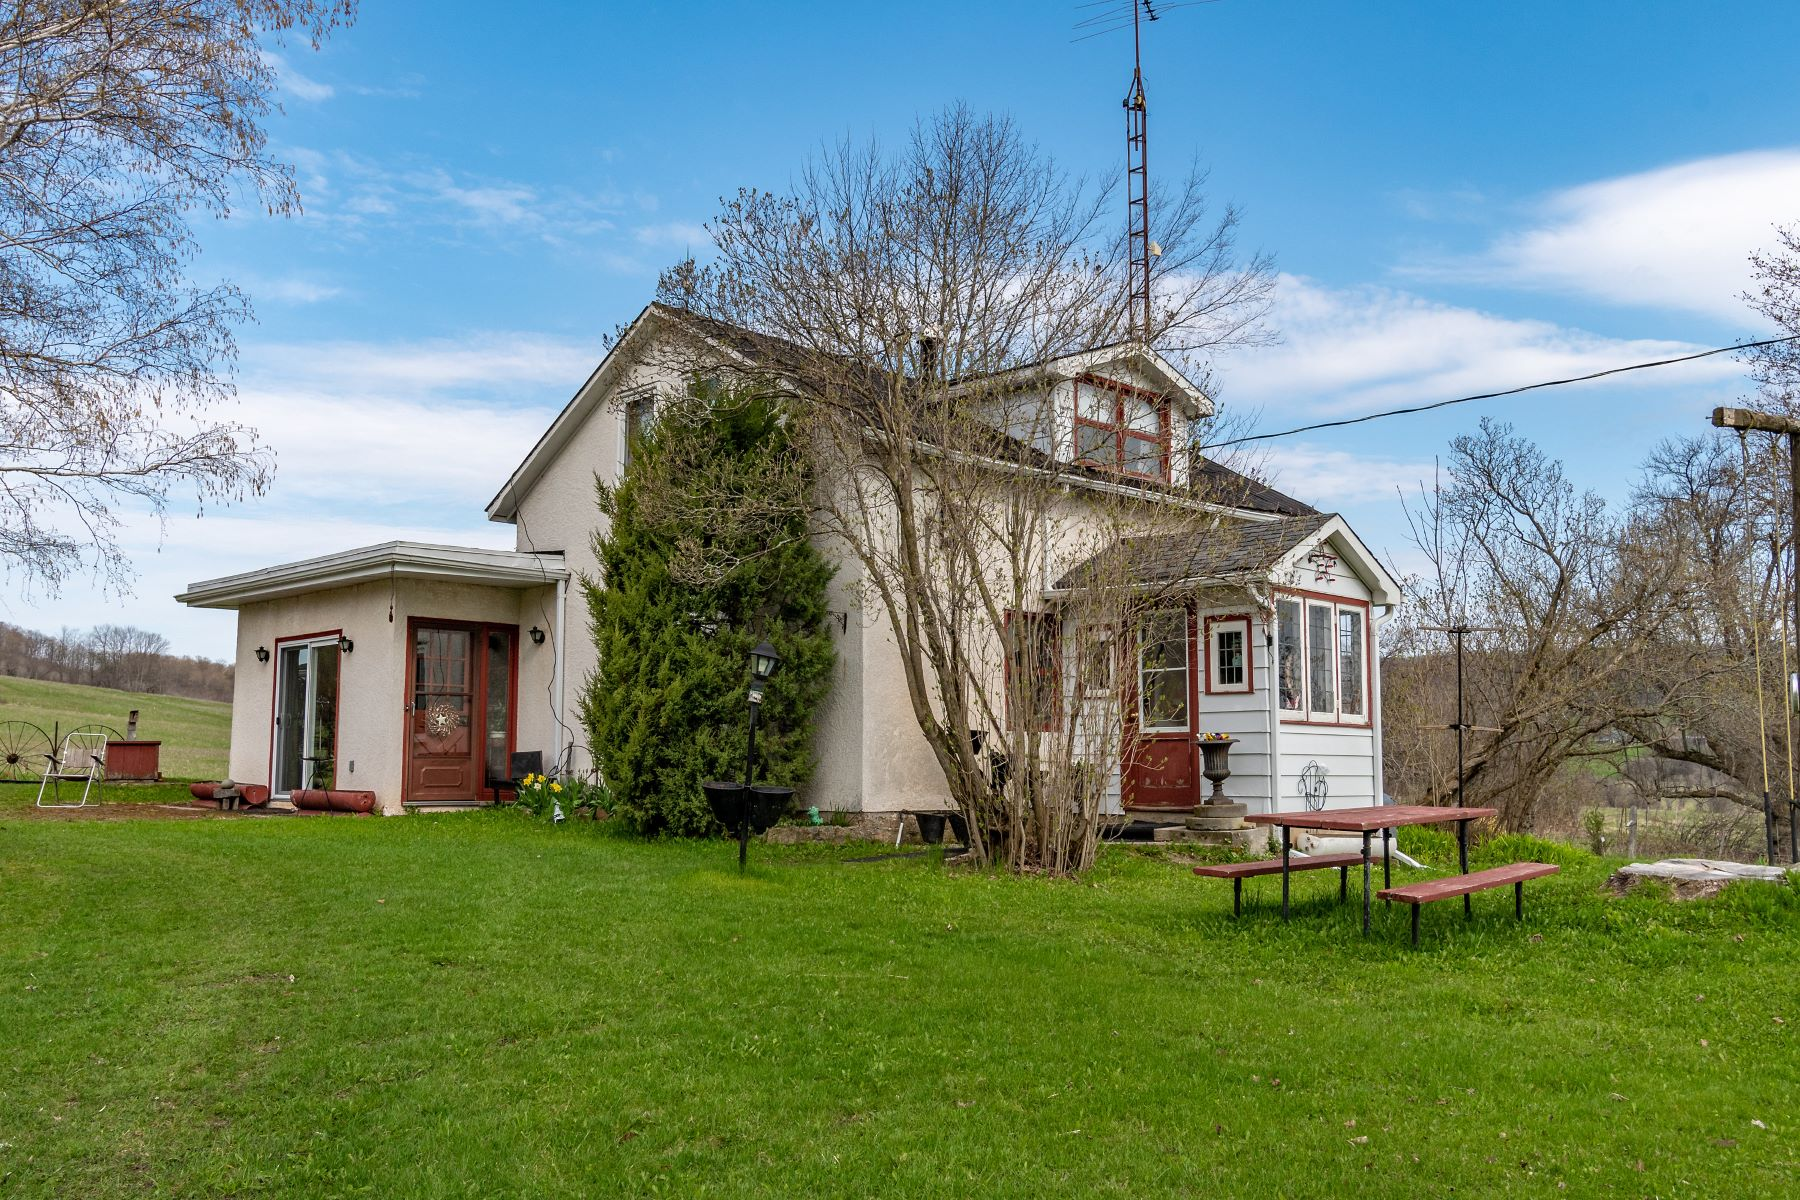 Single Family Homes for Sale at Scenic North Slope Farm 2692 Conc 8 Nottawasaga Rd S Clearview, Ontario L0M 1L0 Canada